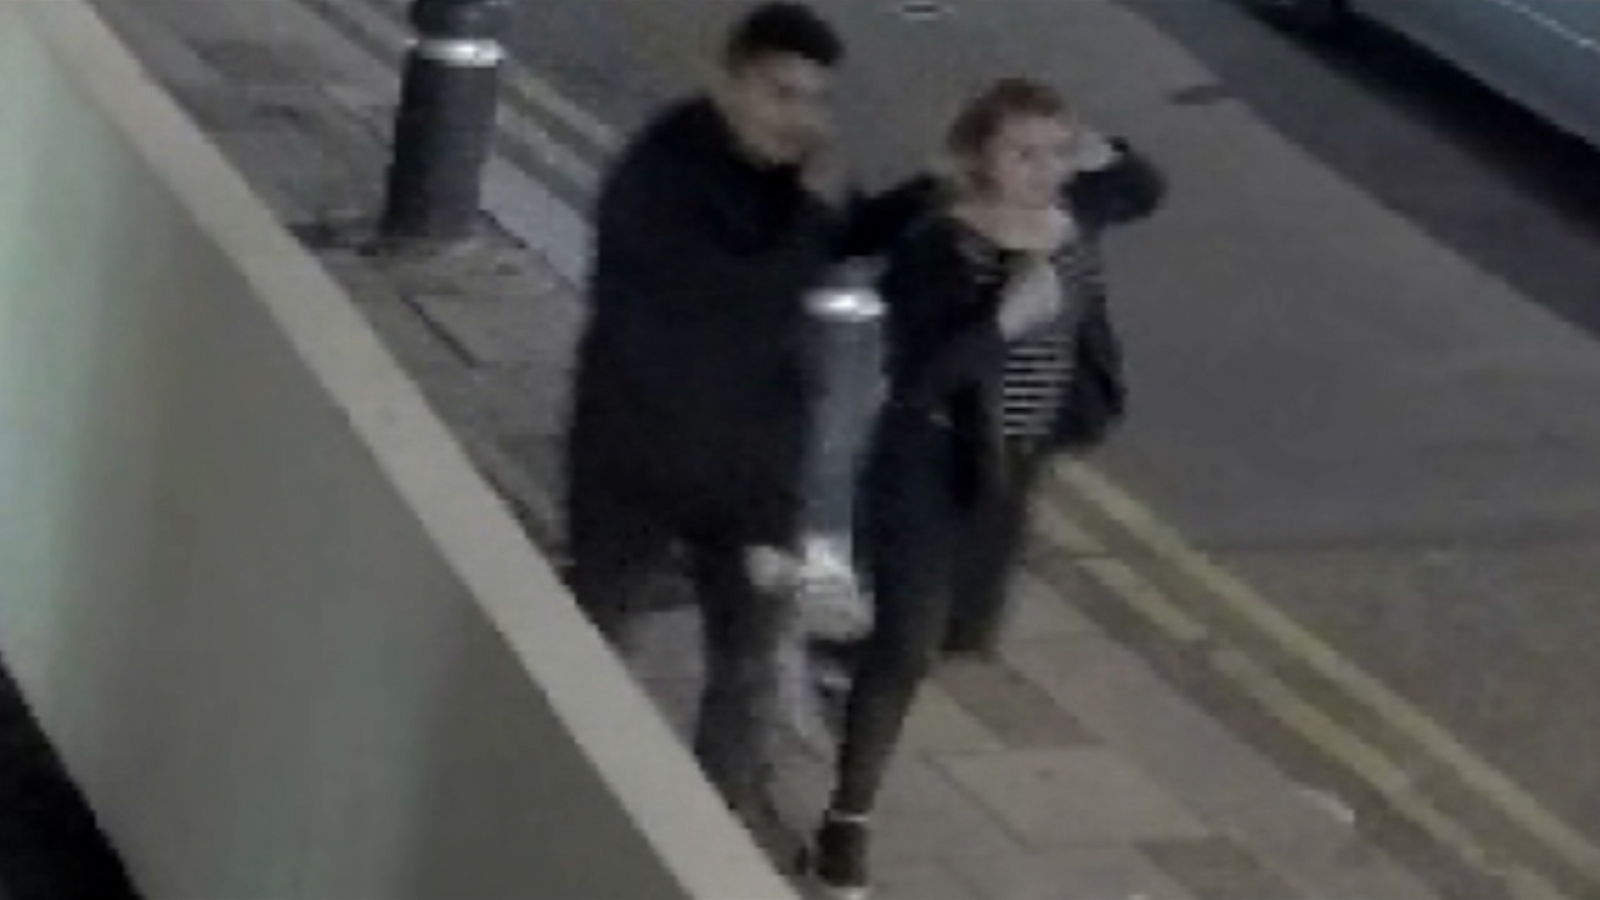 East Ham Abduction Video Shows Man Throttle Woman